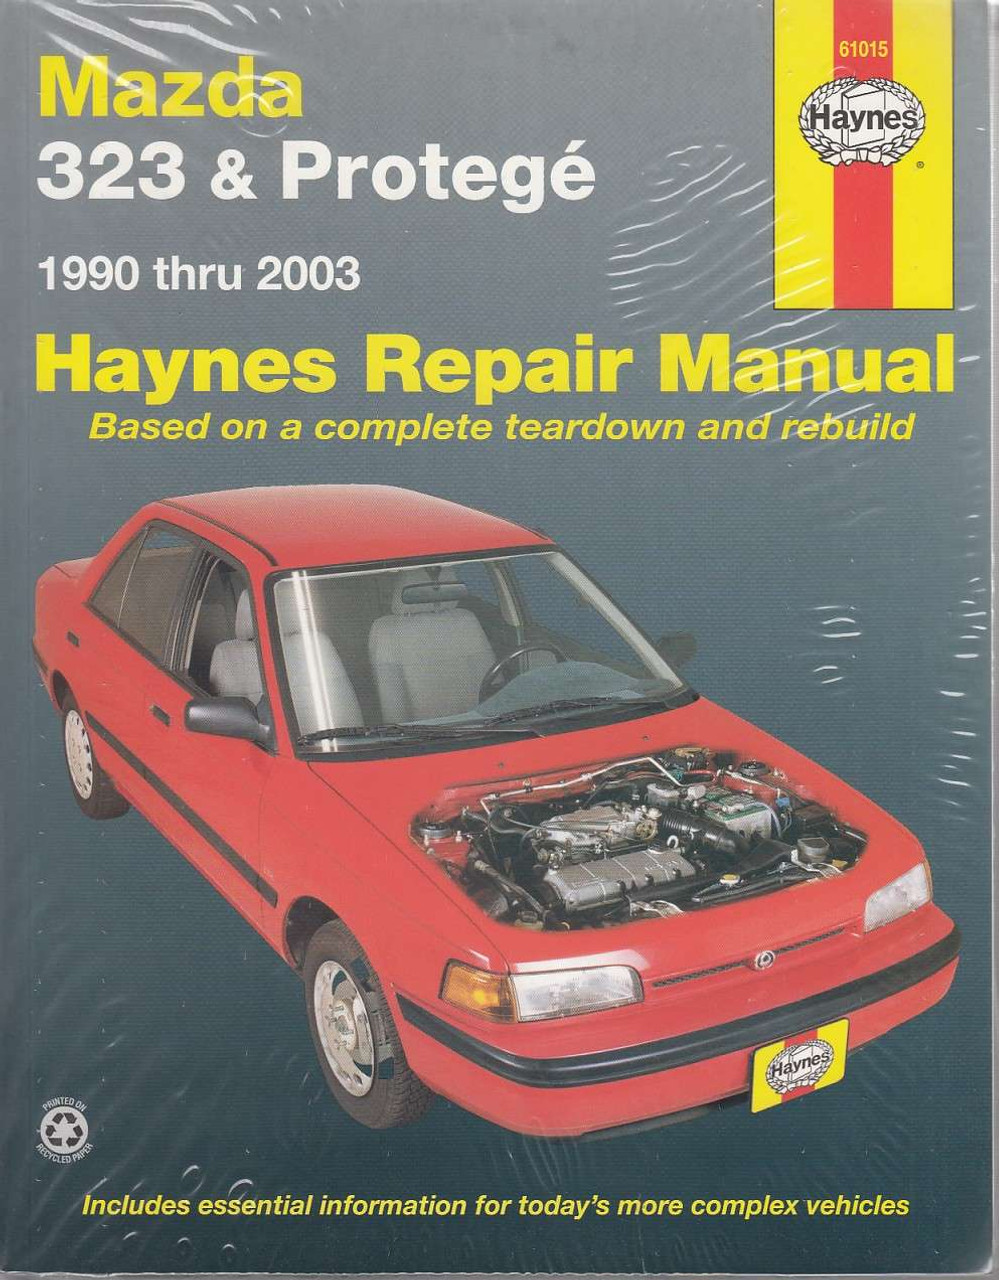 Mazda 323 and Protege Workshop Manual ...